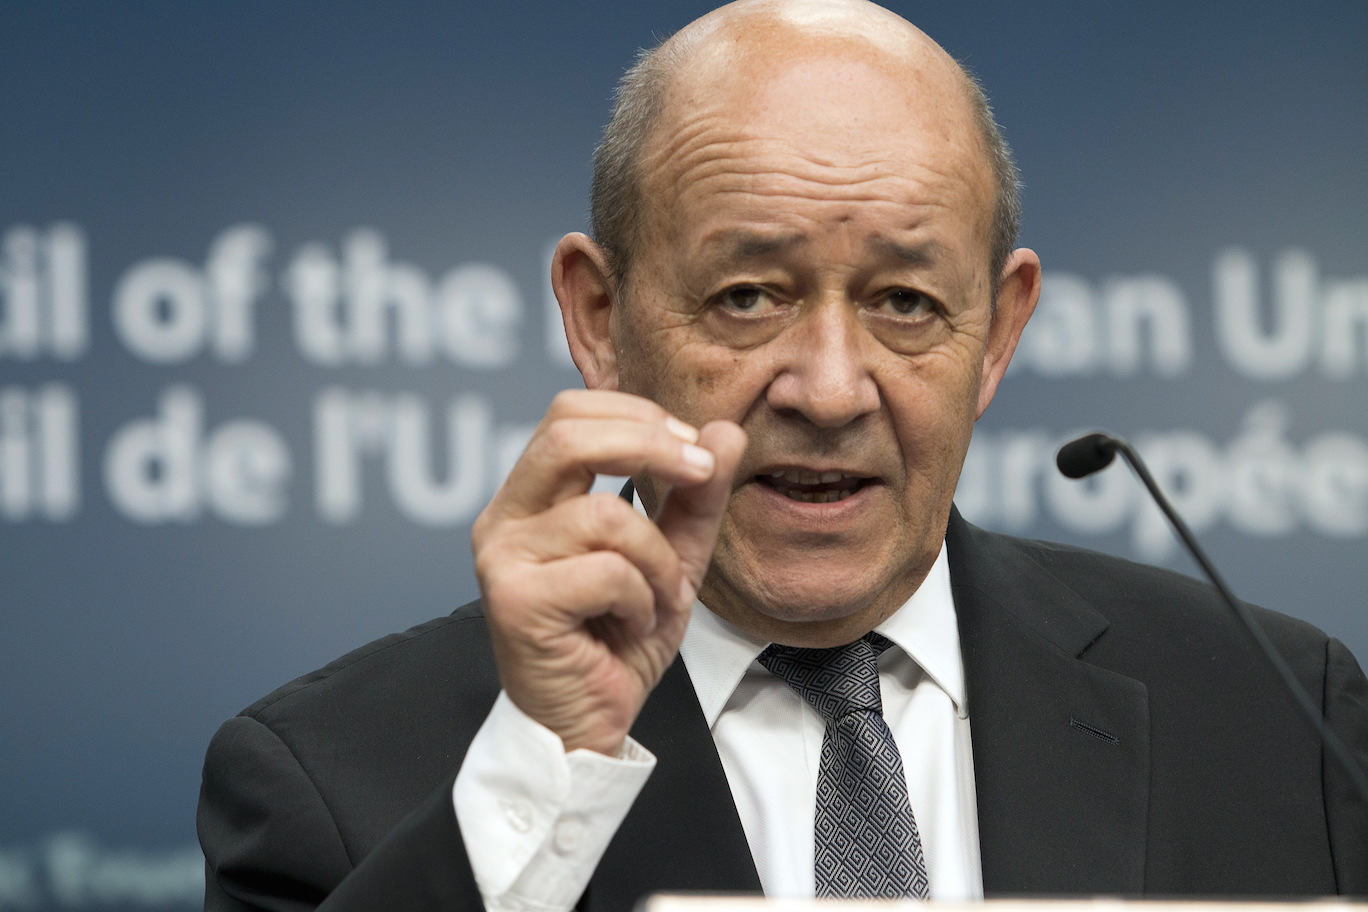 https://img.s3wfg.com/web/img/images_uploaded/9/a/jean-yves-le-drian.jpg